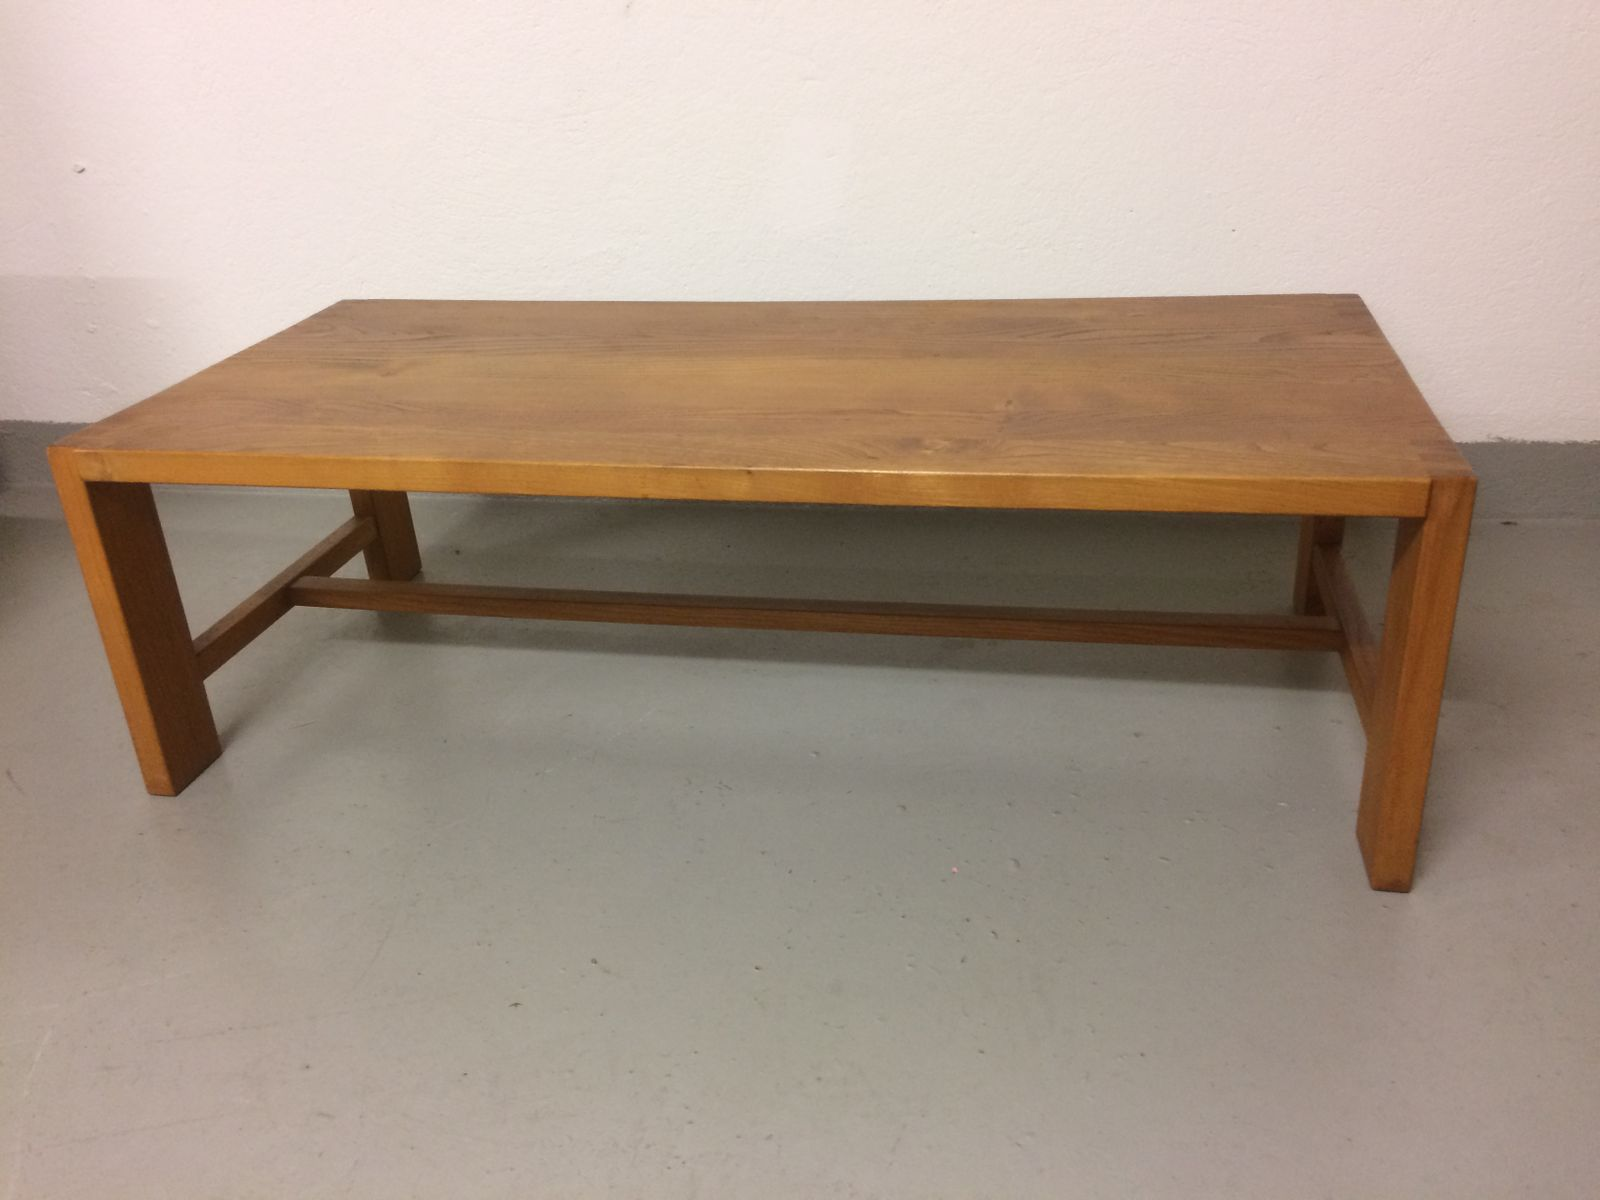 T04 Solid Elm Coffee Table By Pierre Chapo 1970s For Sale At Pamono